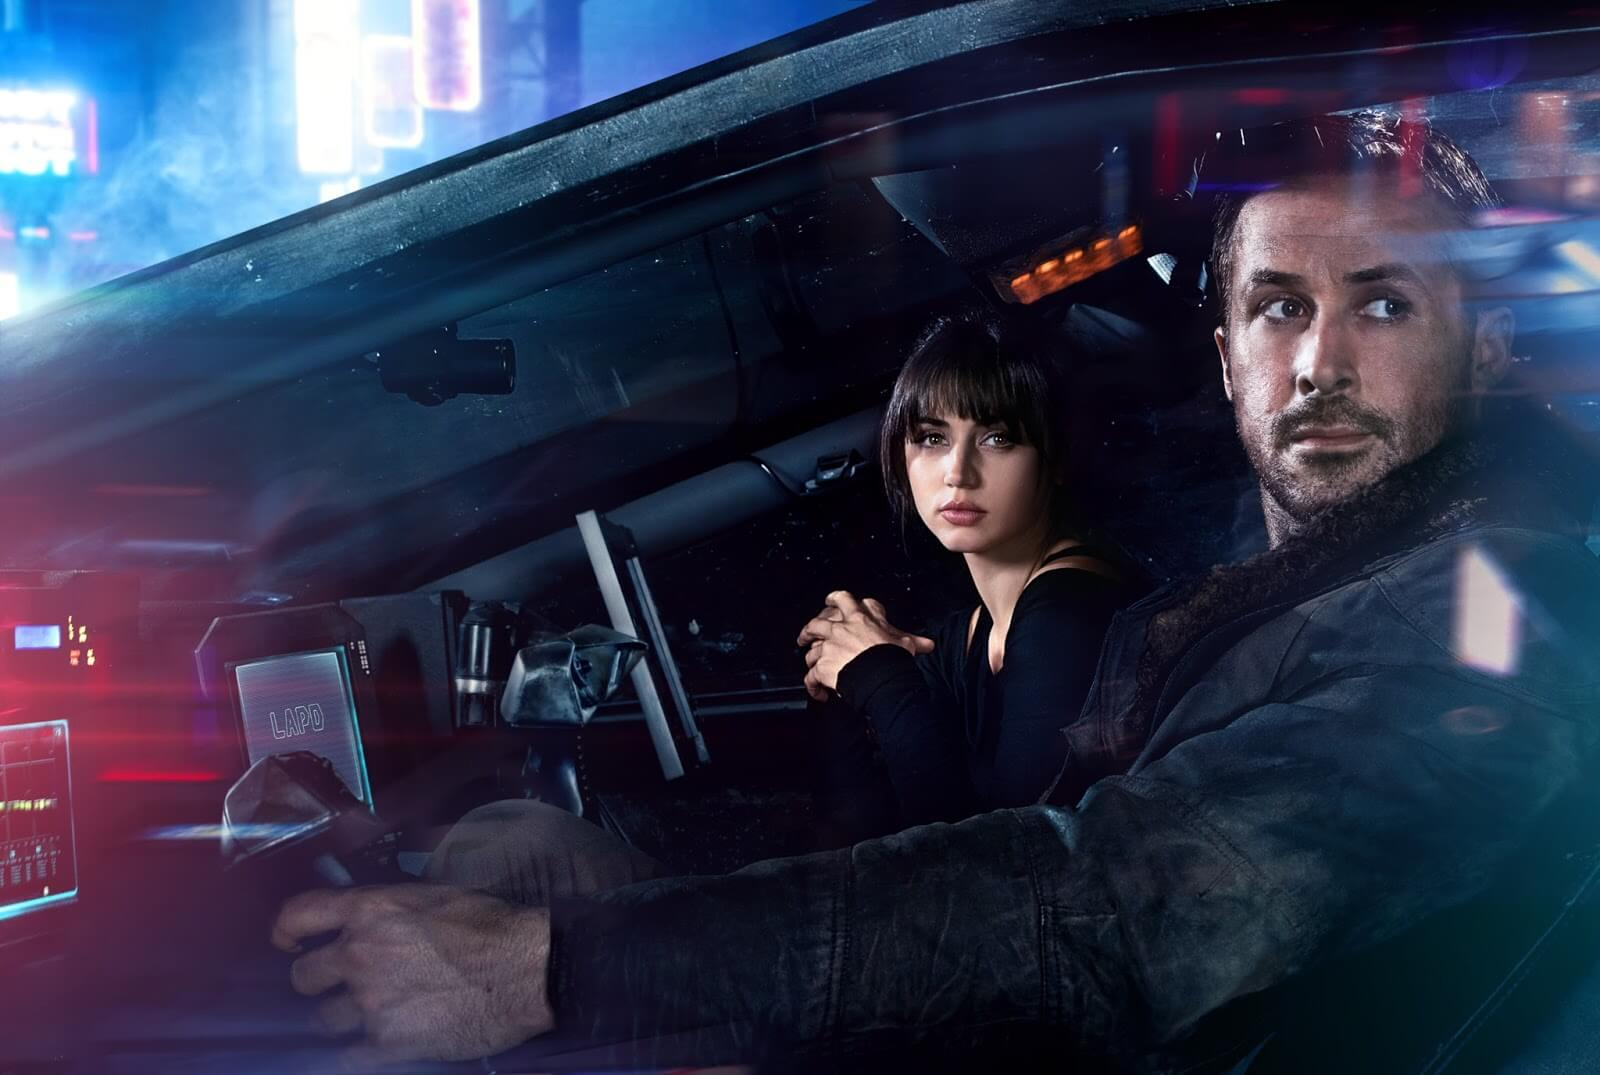 ANA DE ARMAS and RYAN GOSLING in Alcon Entertainment's sci fi thriller BLADE RUNNER 2049 in association with Columbia Pictures, domestic distribution by Warner Bros. Pictures and international distribution by Sony Pictures Releasing International.